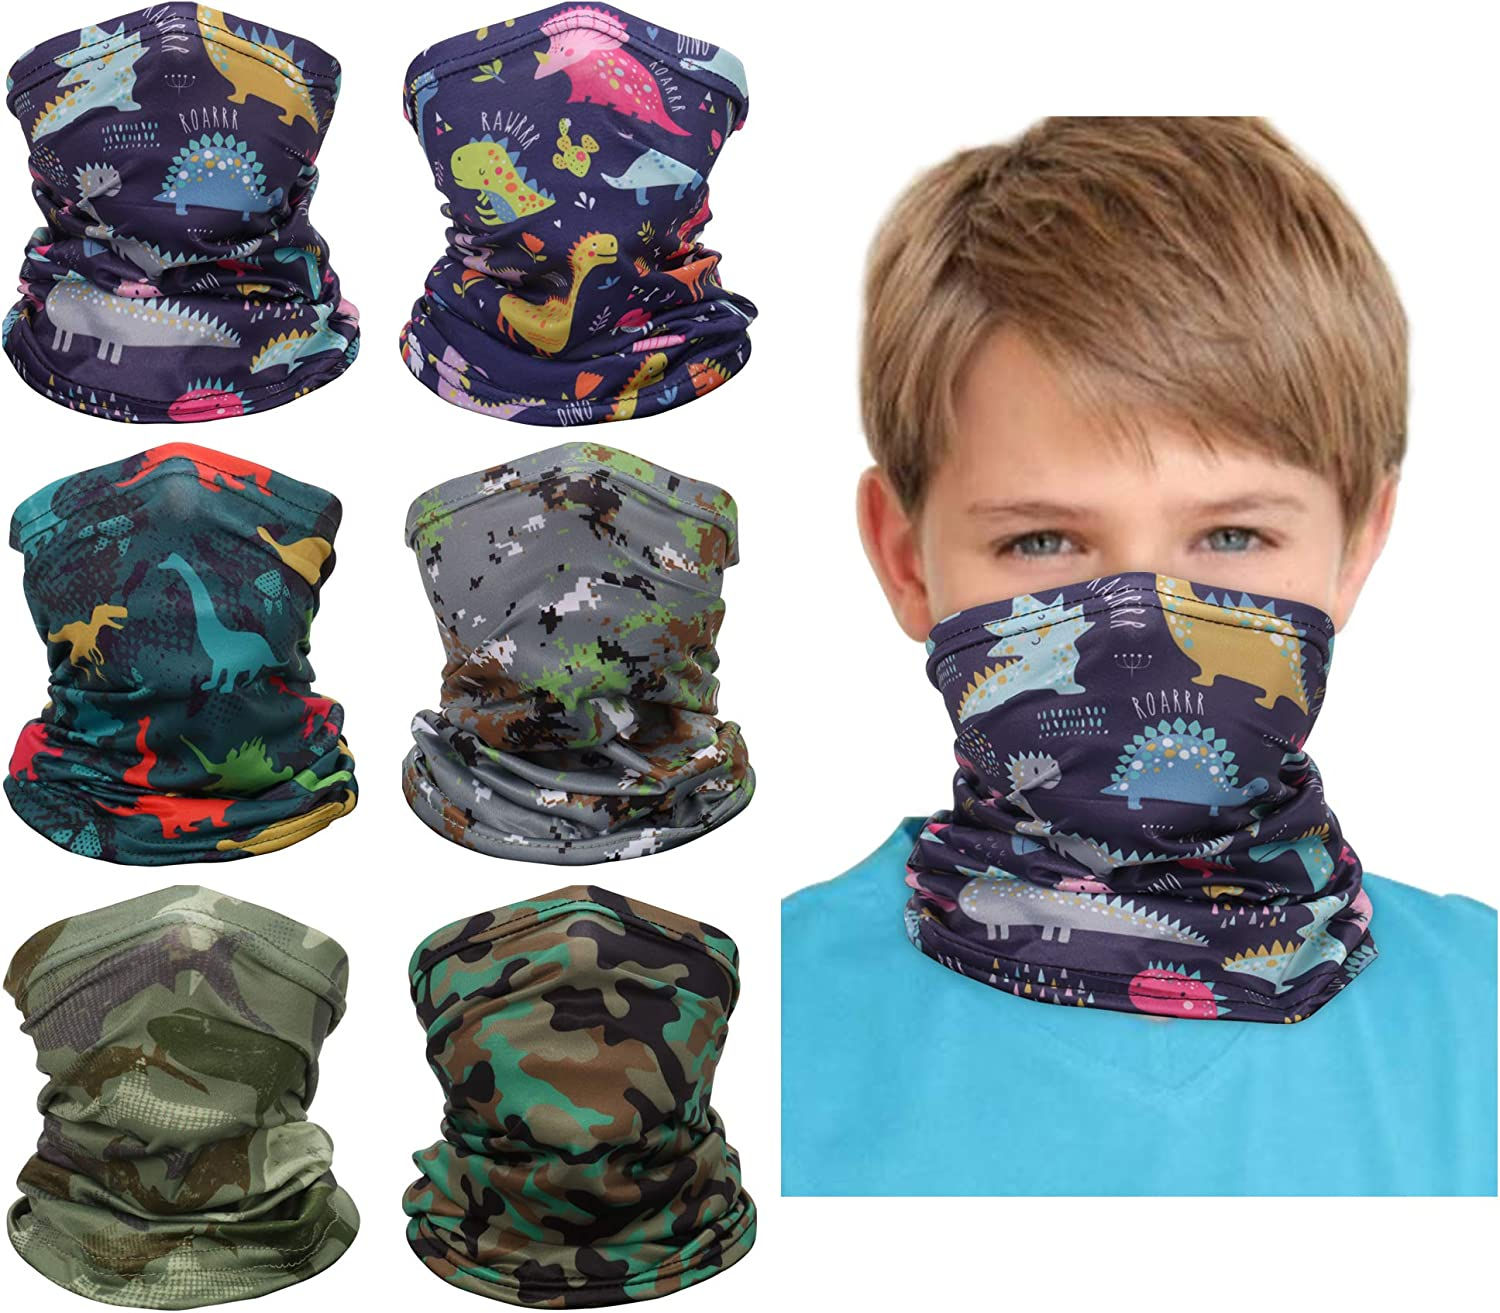 6PCS Kids Youth Neck Gaiter Bandana Tube Face Mouth Cover Scarf Anti Dust Balaclava Headband Cycling Hiking Sport Outdoor for Boys Girls: Clothing